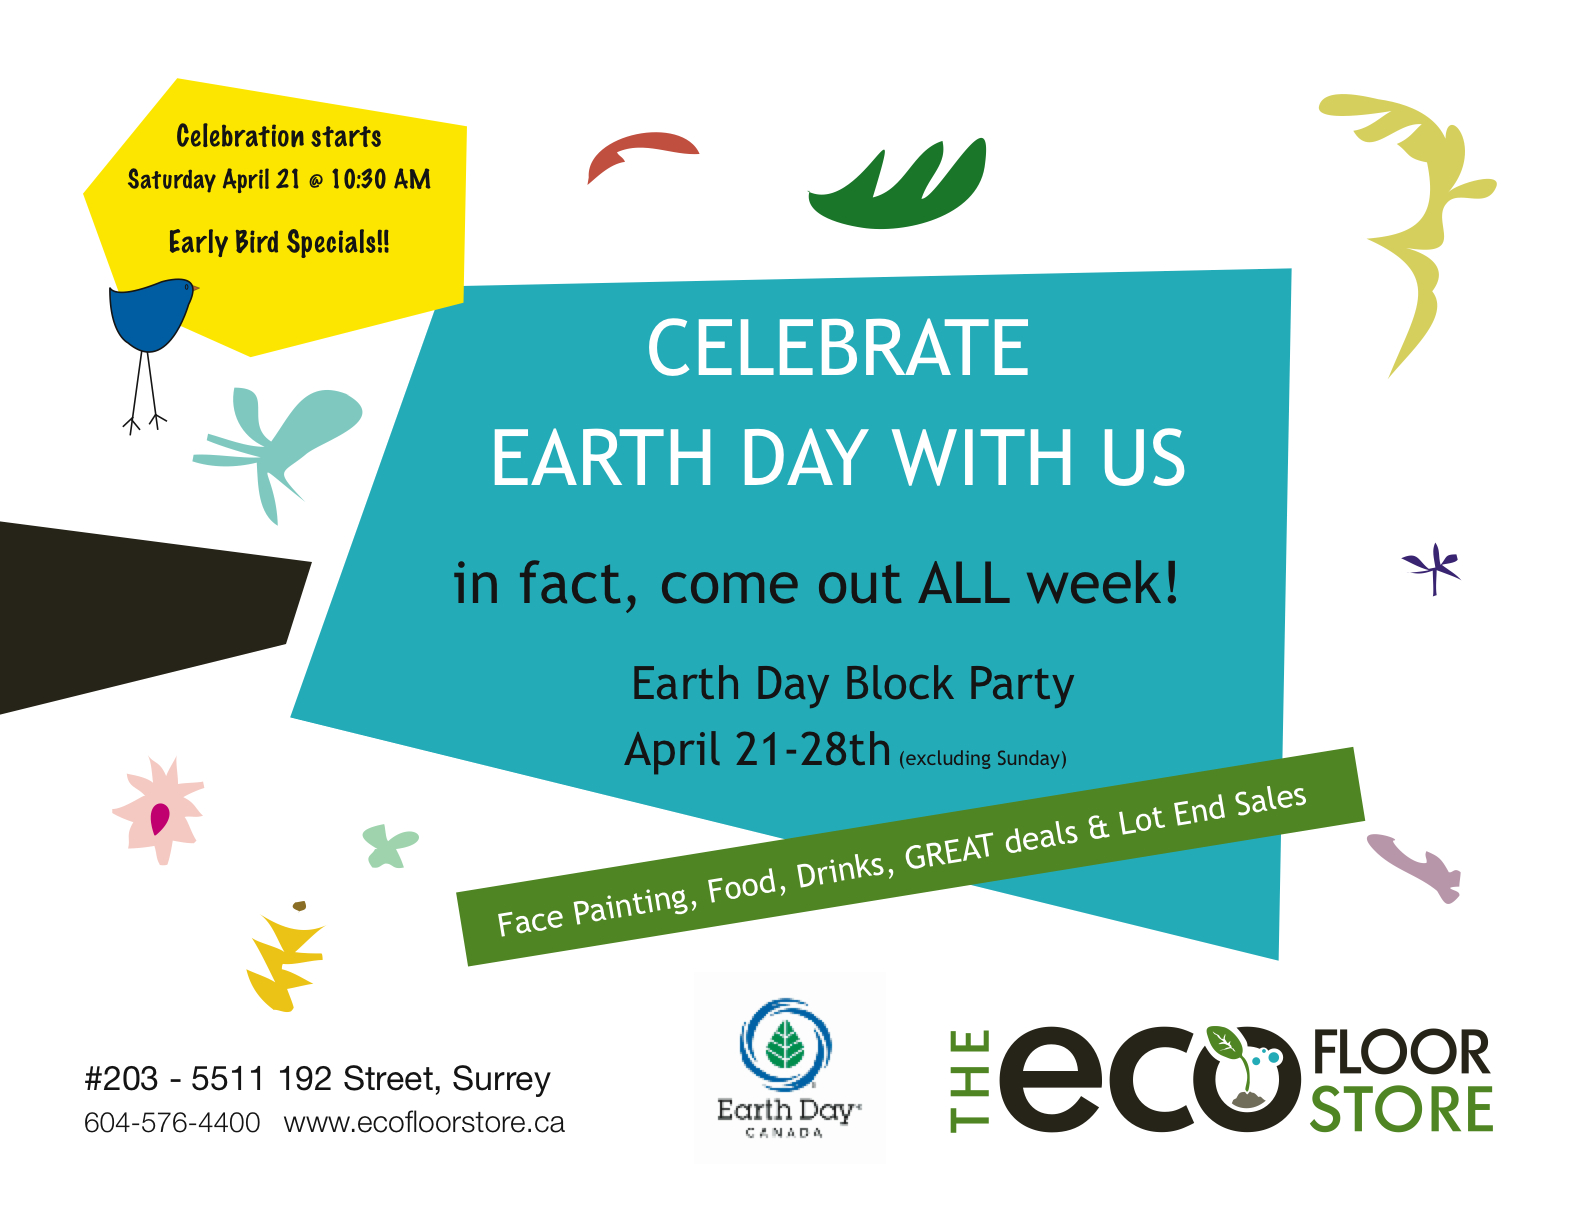 Earth Day Sale at The Eco Floor Store